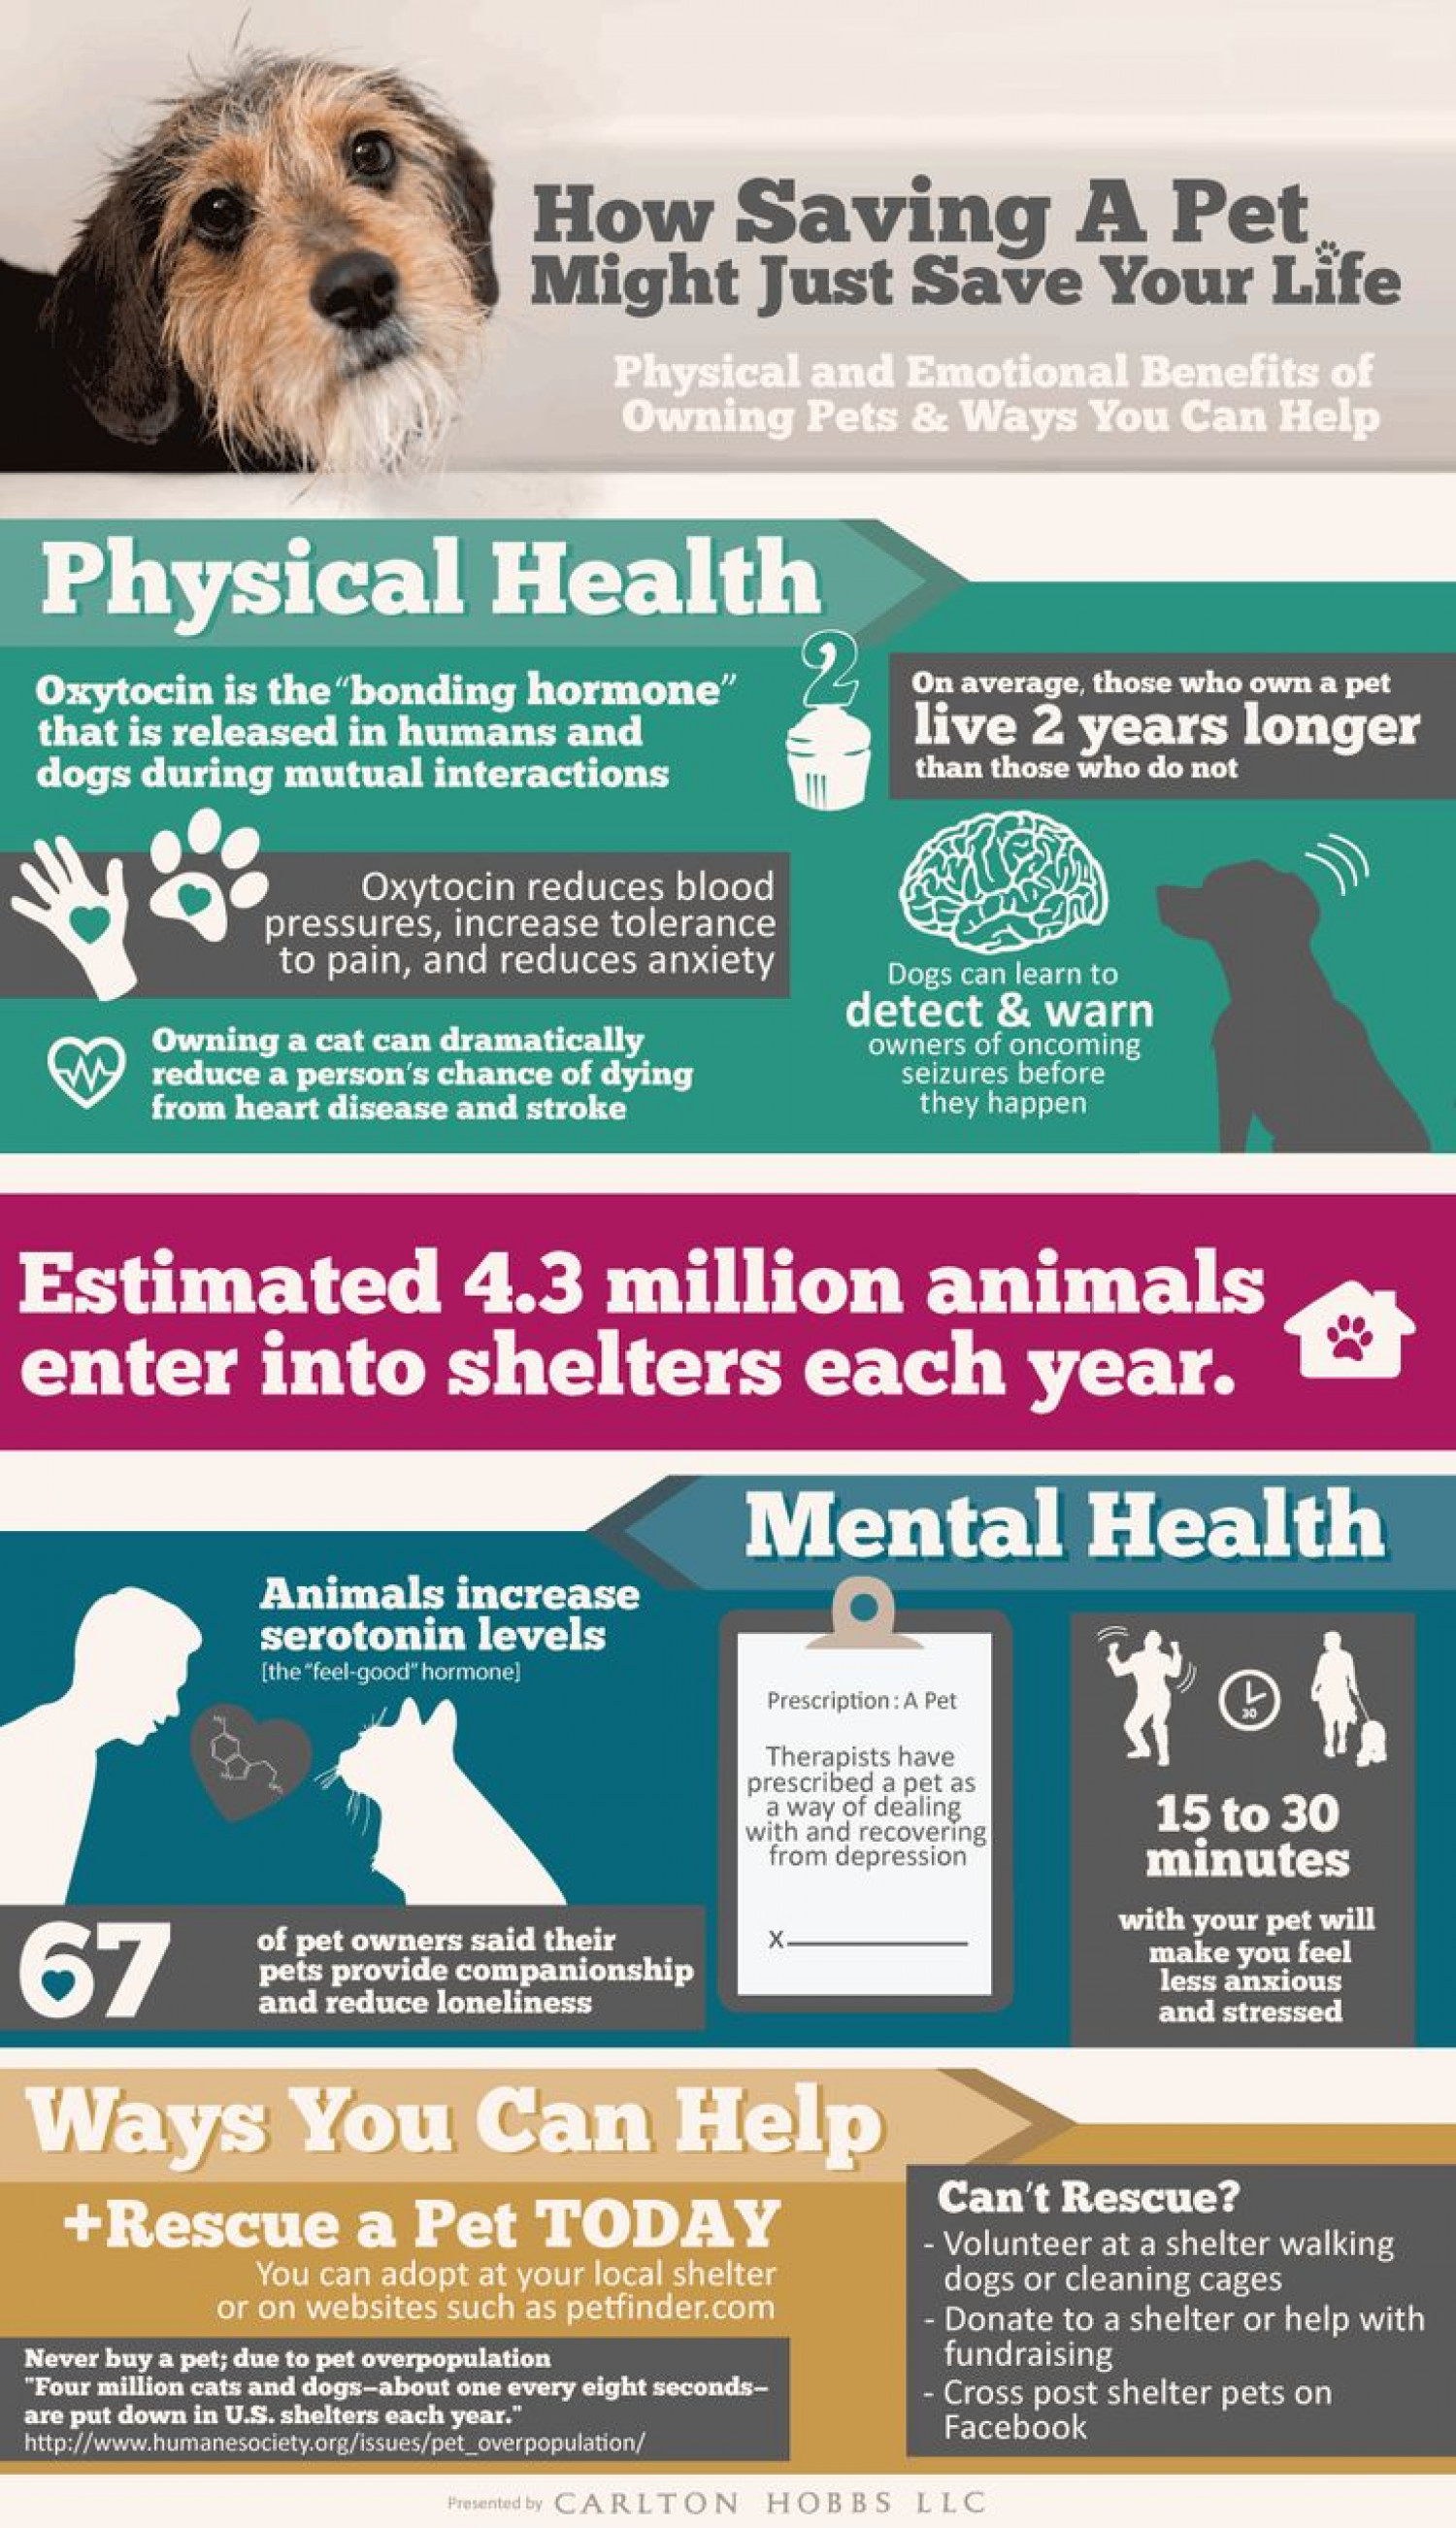 Benefits of Owning a Pet Infographic